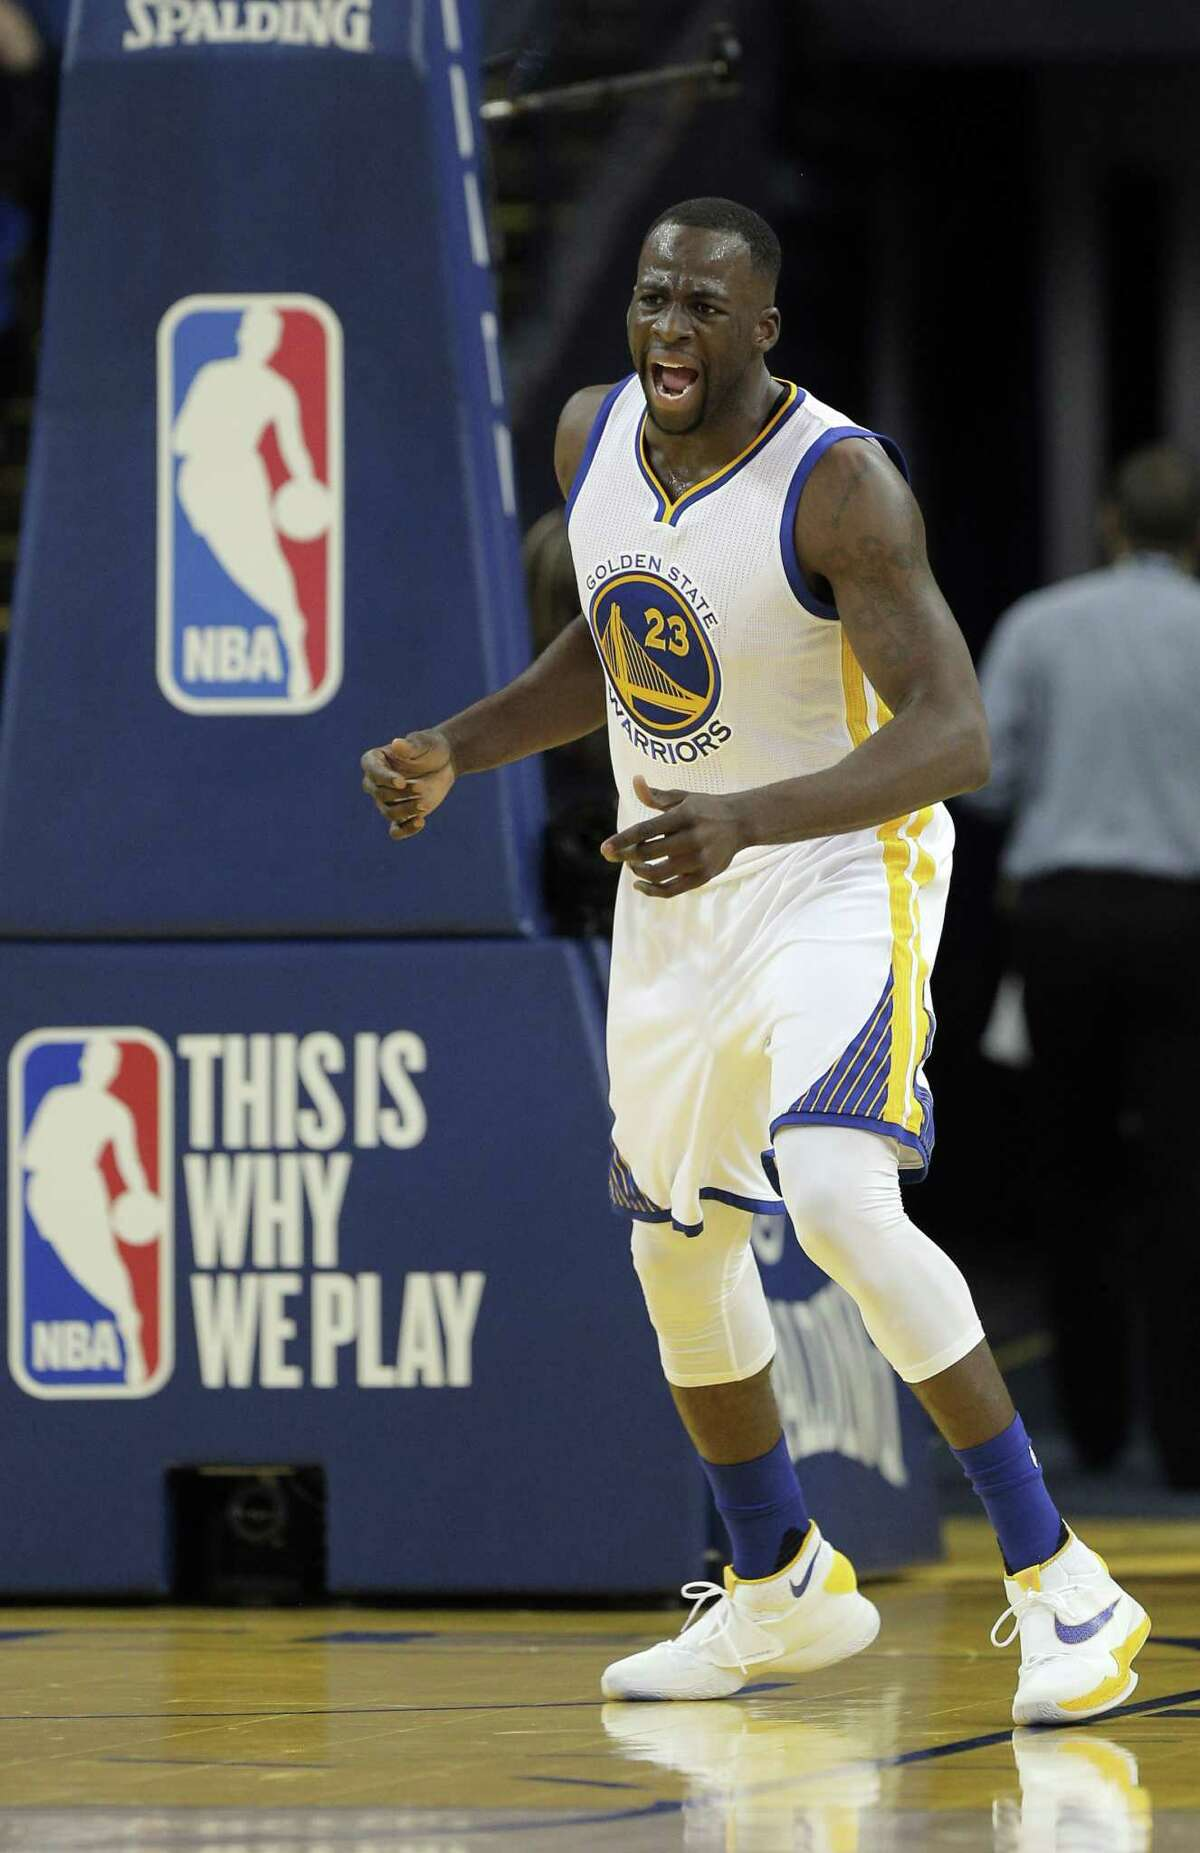 Draymond Green (23) reacts after dunking the ball during the first half as the Golden State Warriors played the San Antonio Spurs at Oracle Arena in Oakland Calif., on Thursday, April 7, 2016.